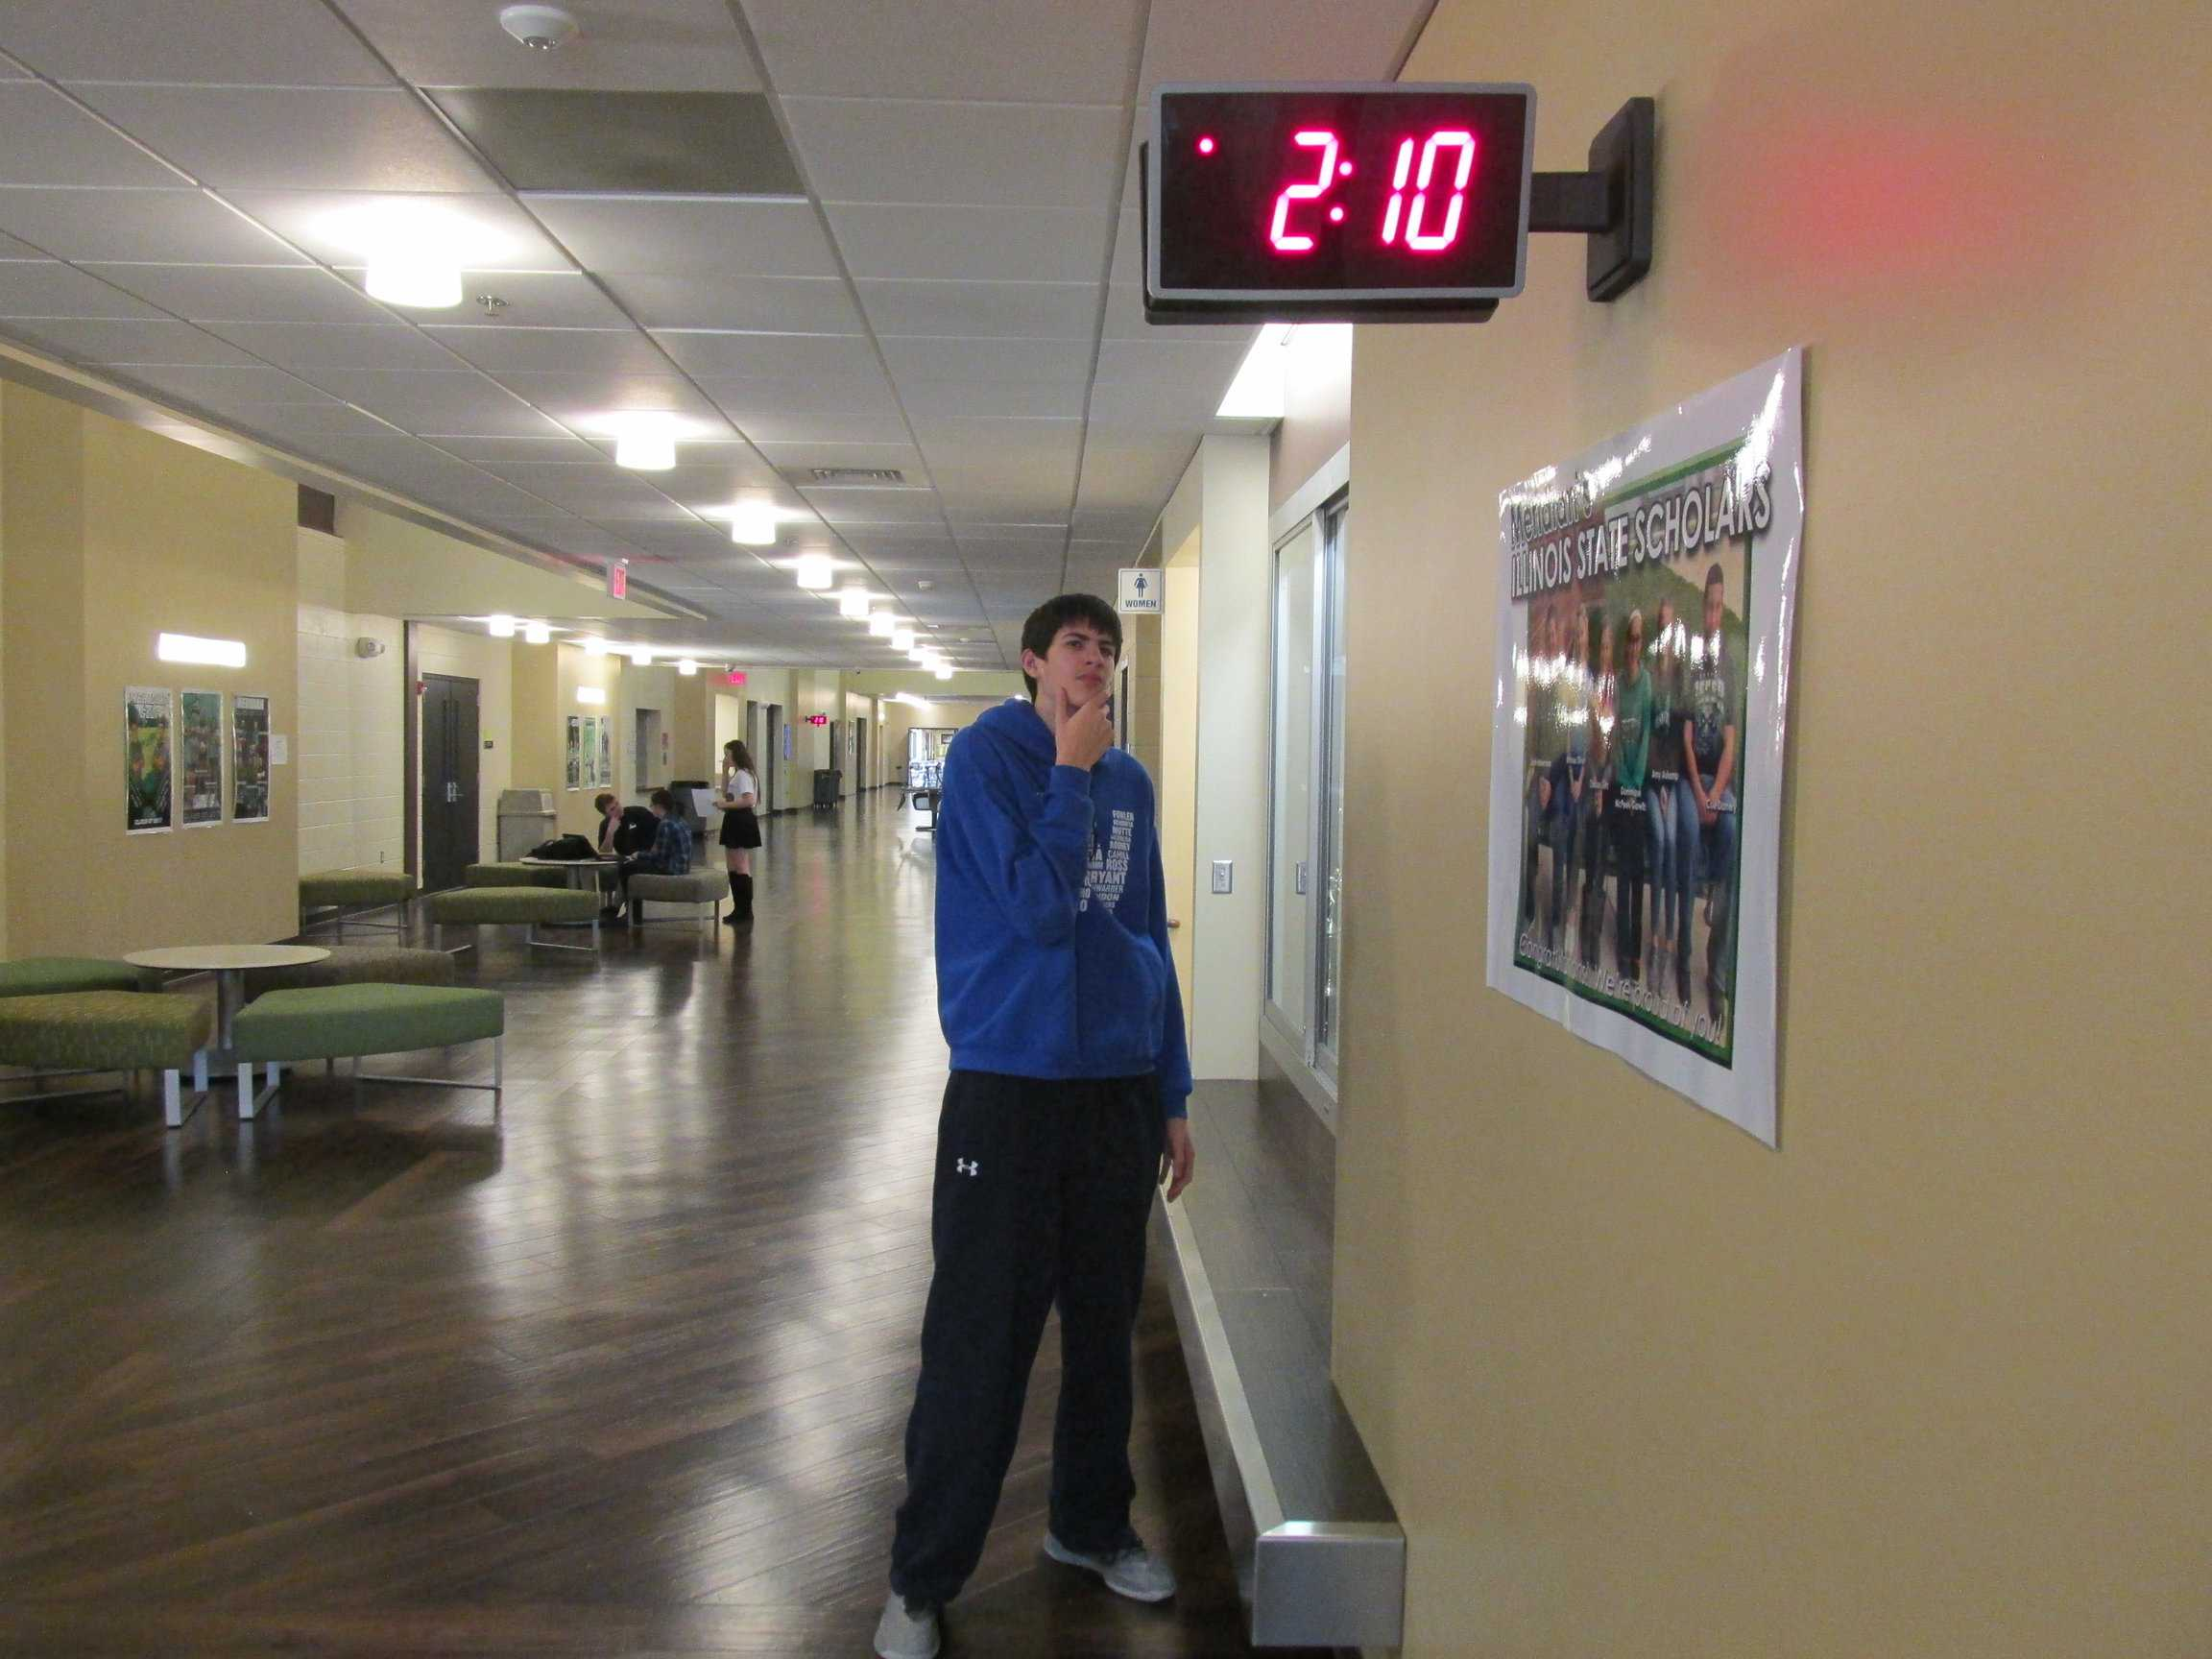 Time flies, daylight savings time may throw off students' schedules. Sophomore Matthew Maxwell said,